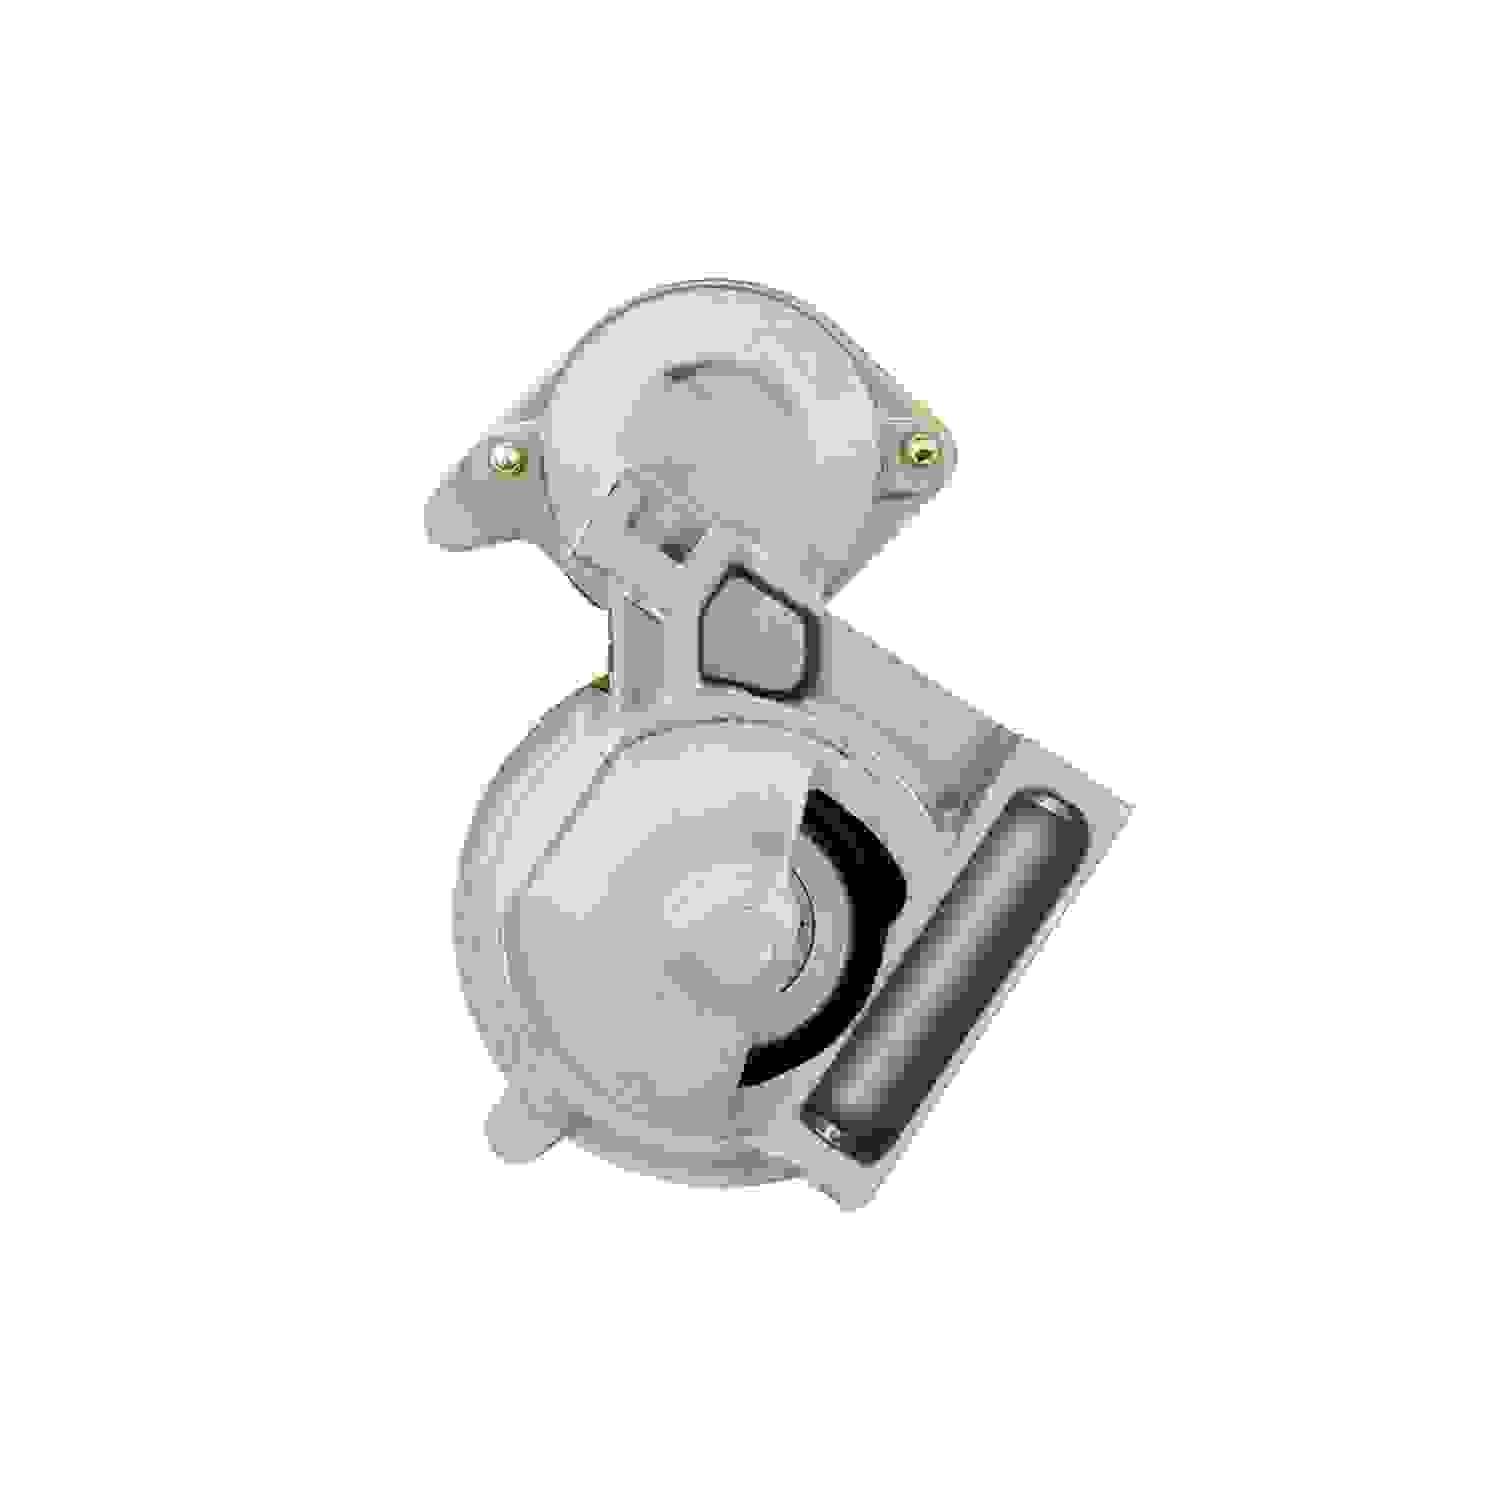 ACDELCO PROFESSIONAL - Starter Motor - DCC 337-1126